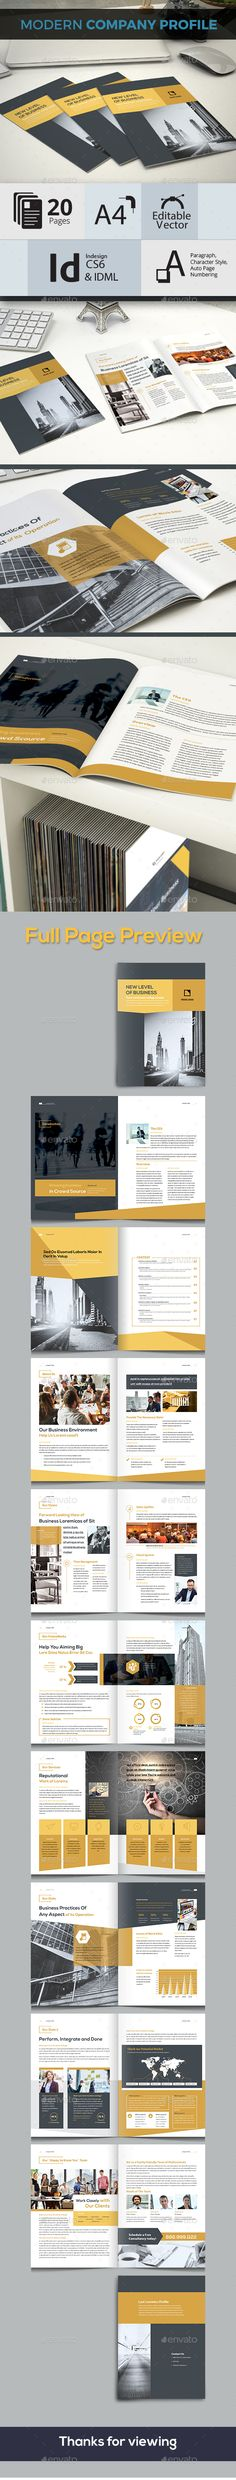 Modern and Creative Company Profile - #Corporate #Brochures Download here: https://graphicriver.net/item/modern-and-creative-company-profile/19342605?ref=alena994